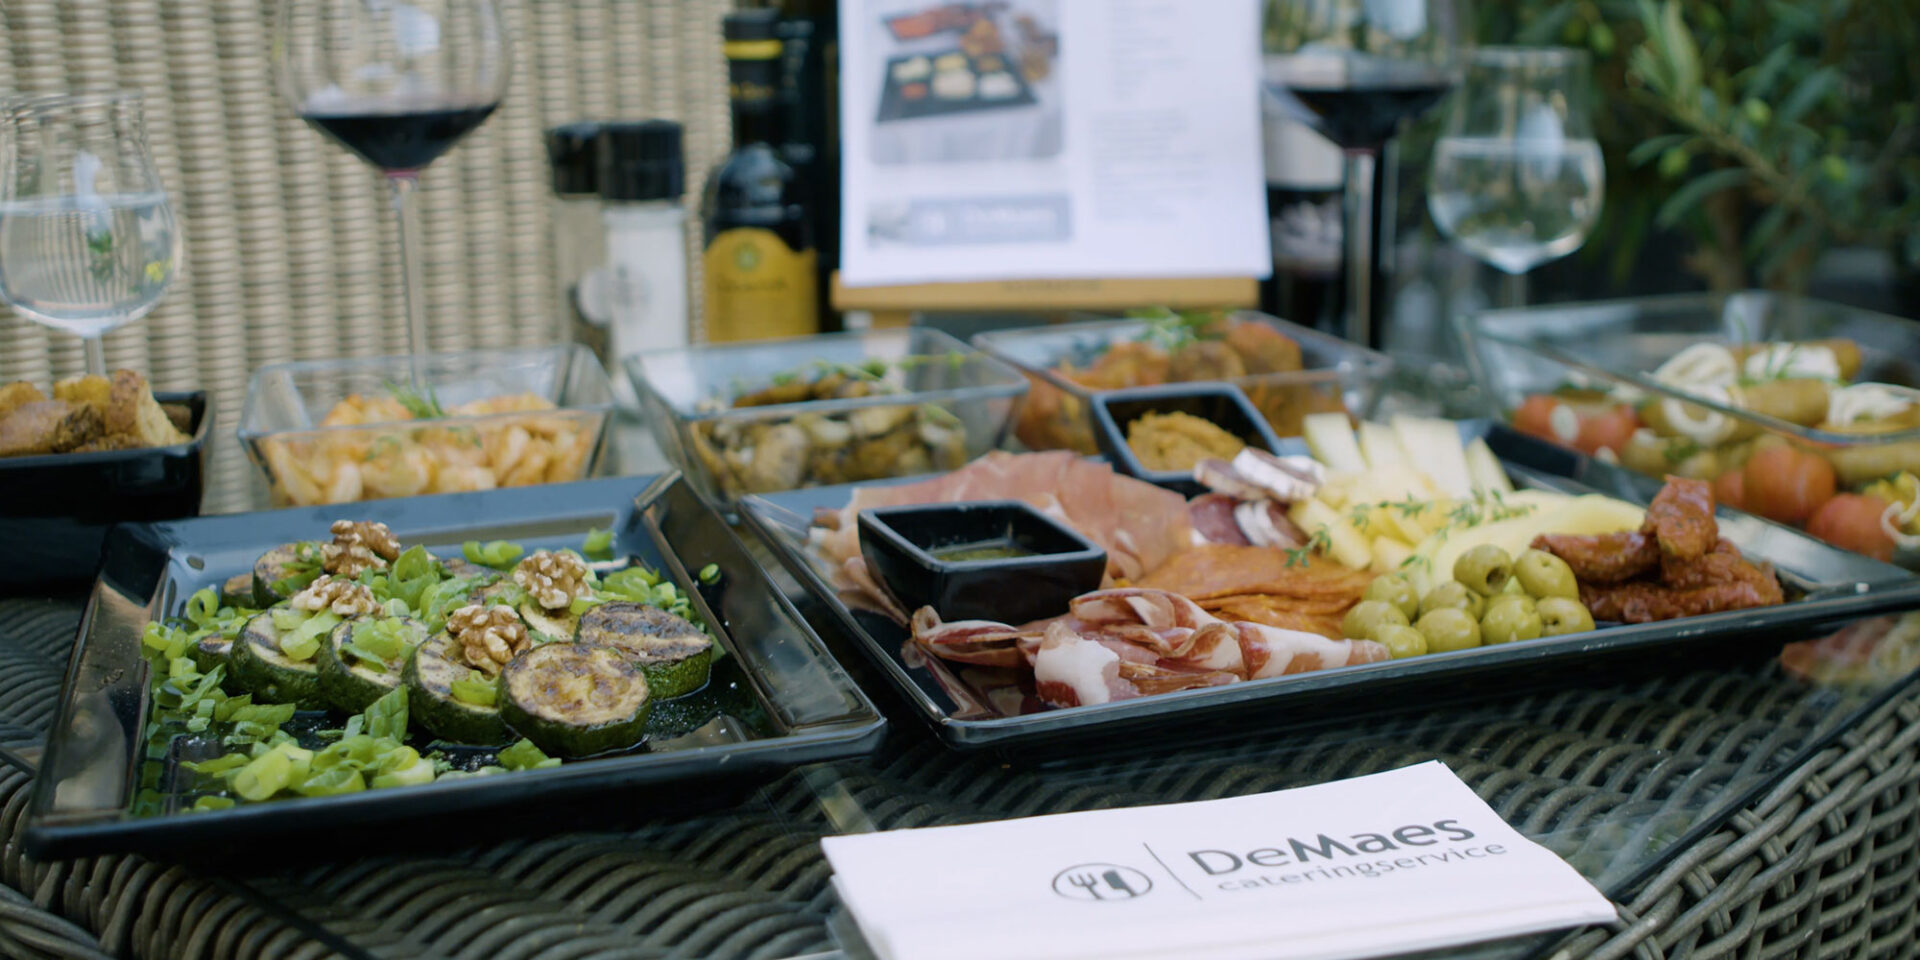 DeMaes Cateringservice